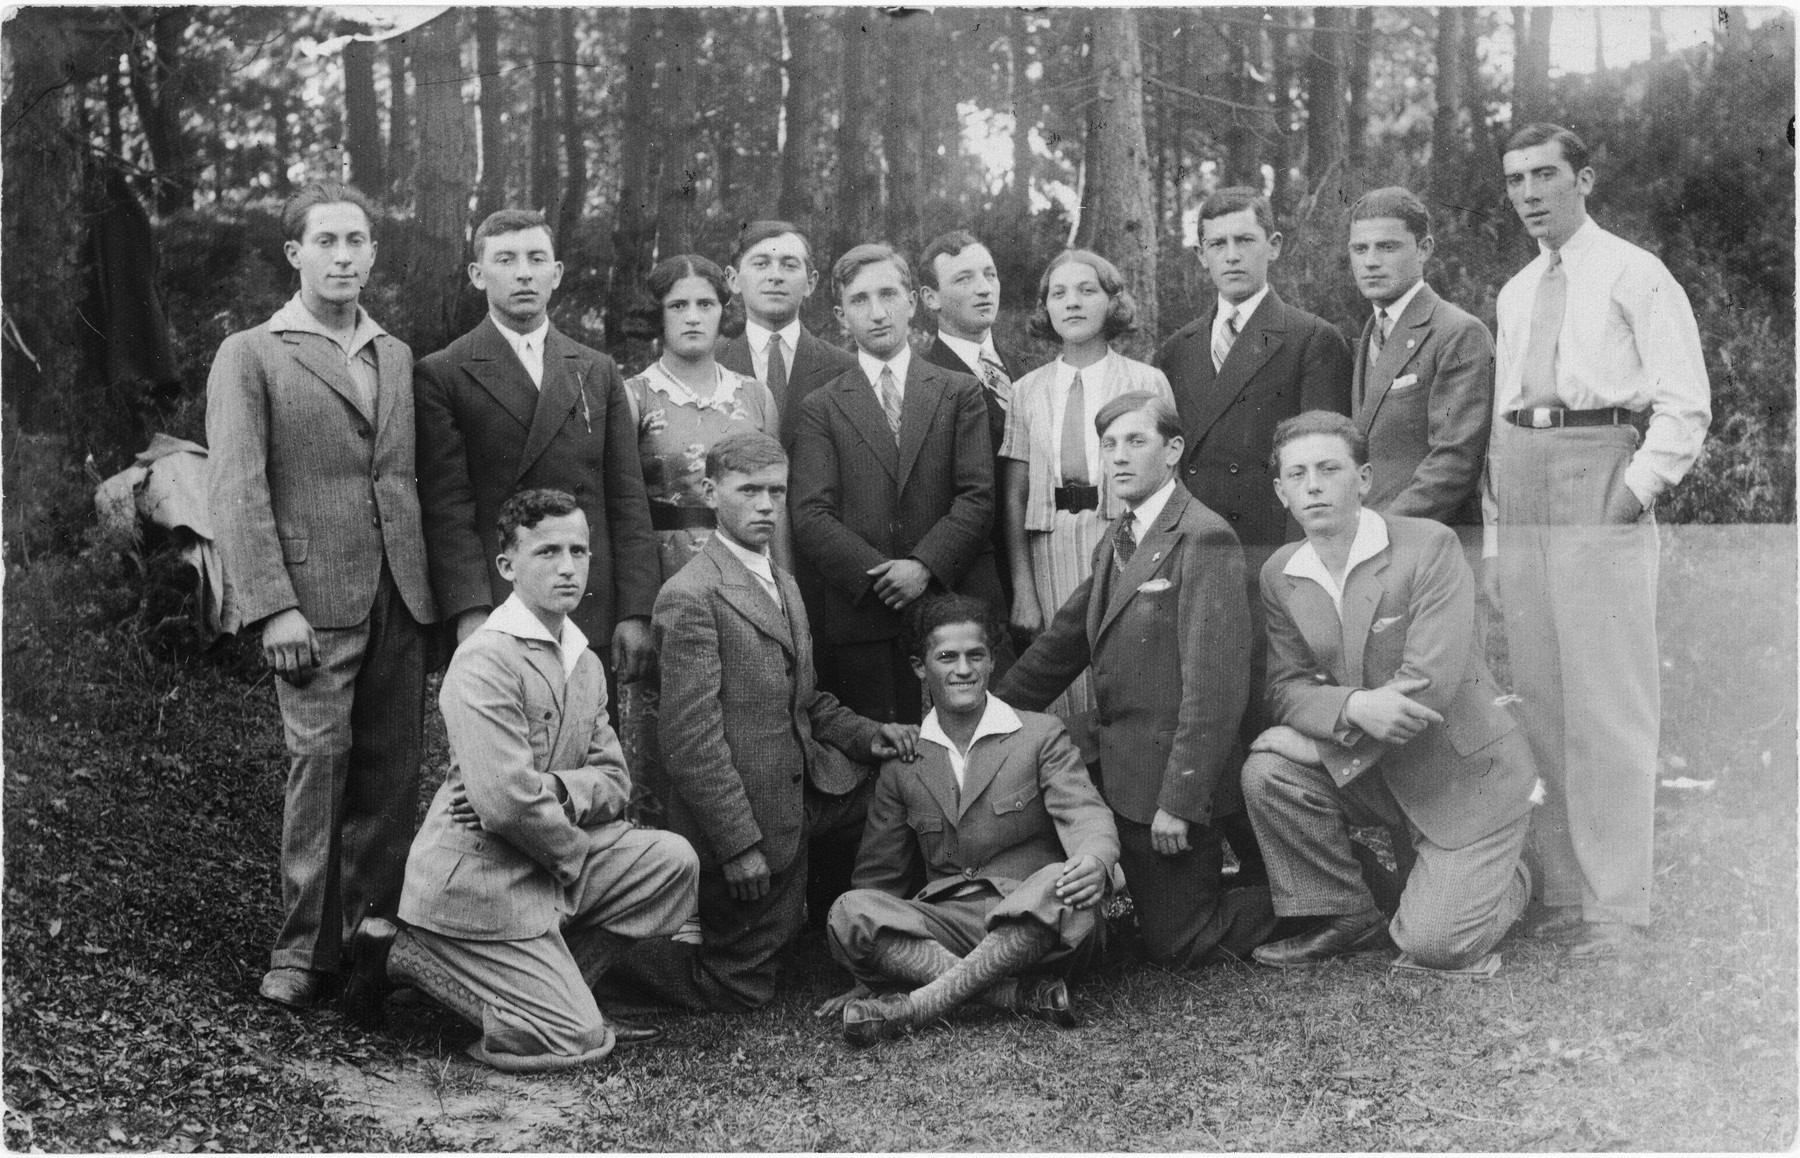 Group portrait of Jewish youth in Rymanow, Poland.